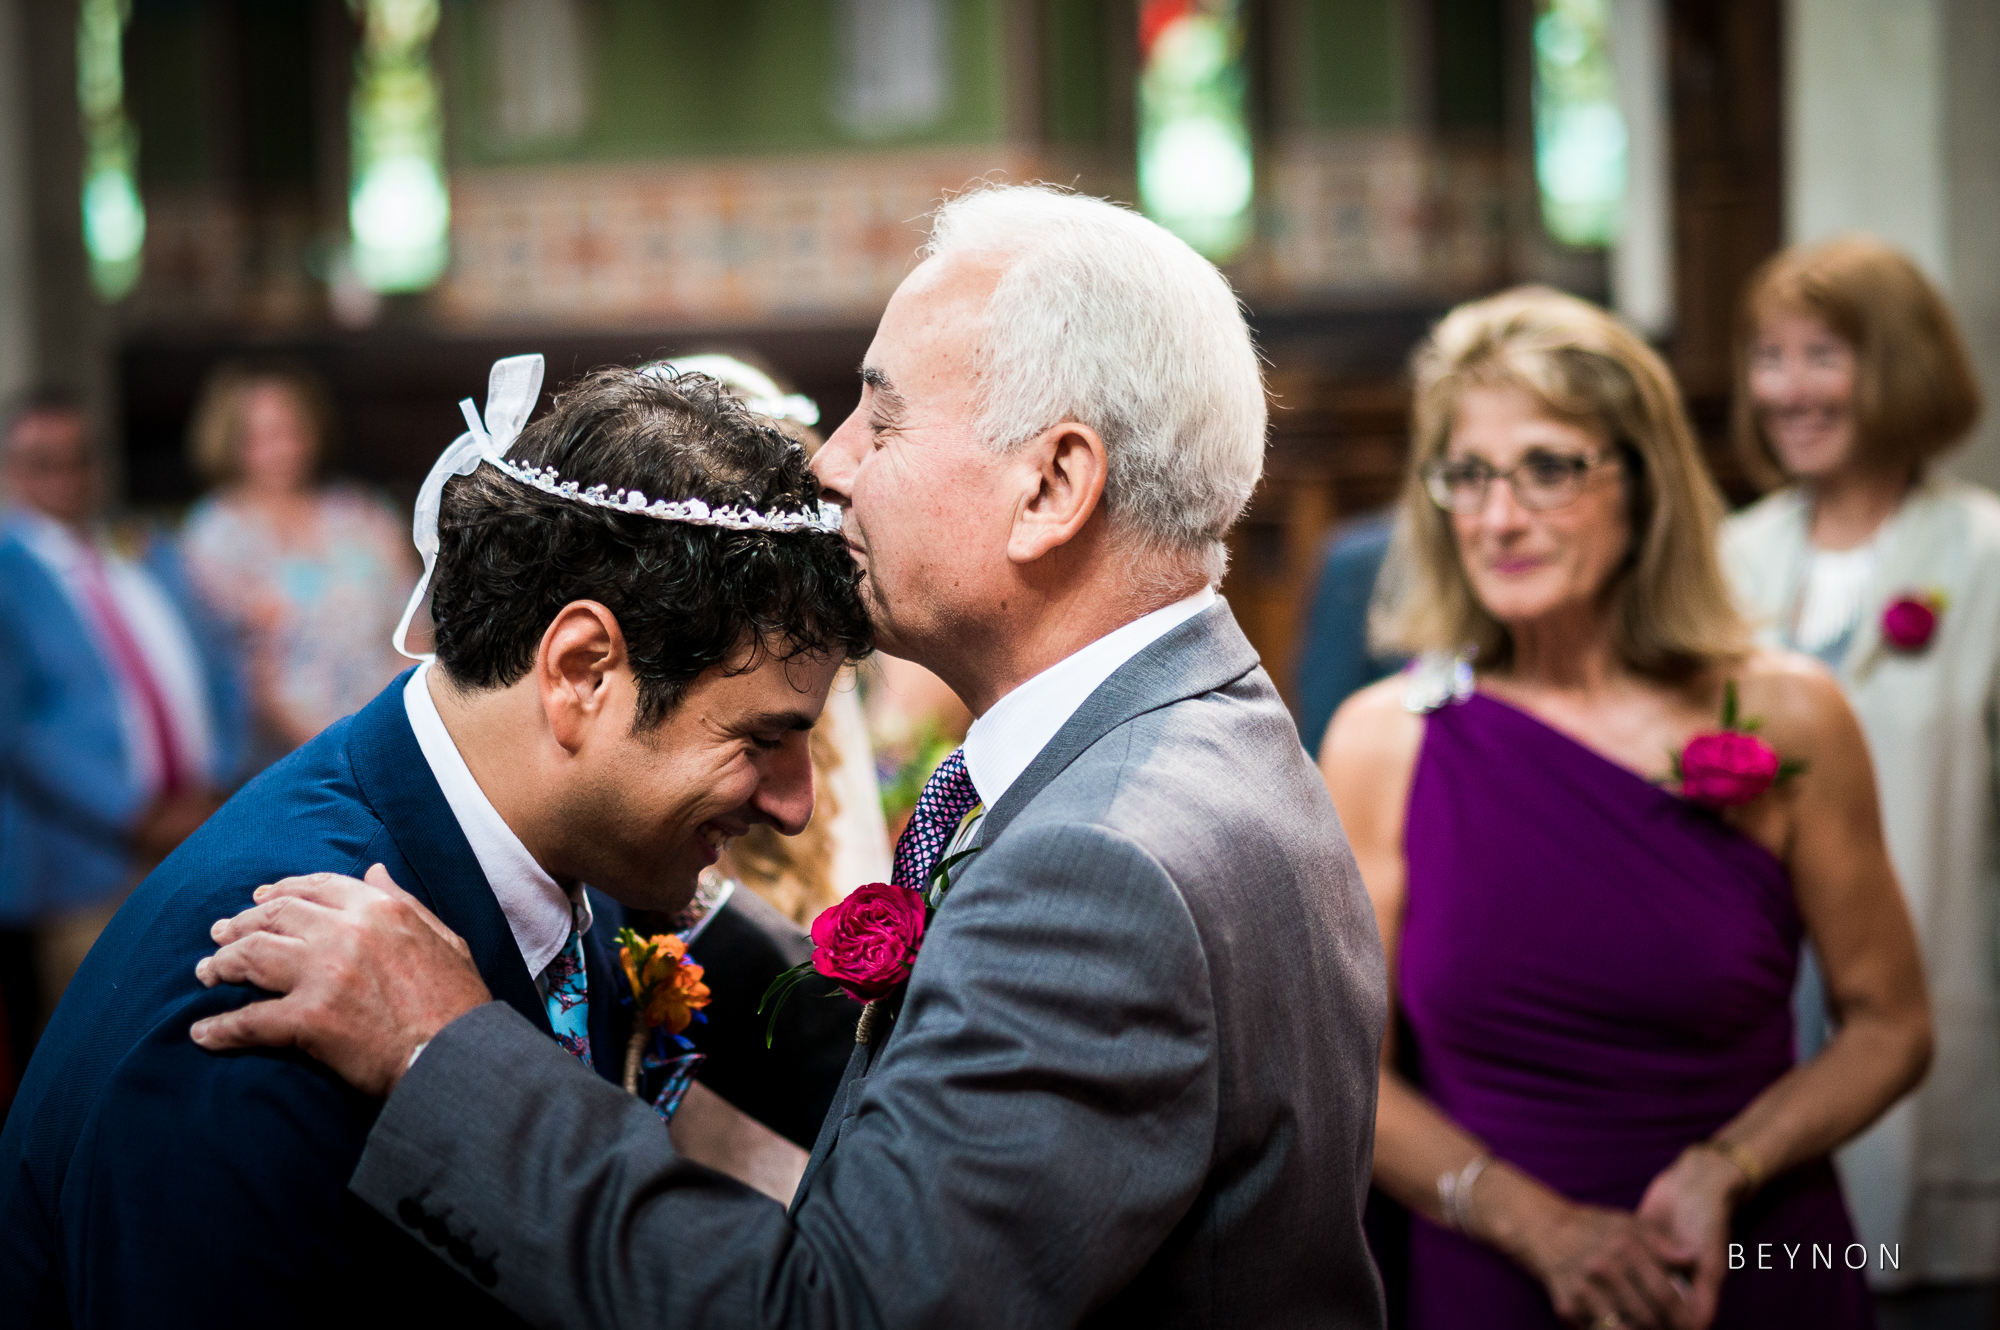 the father of the bride kisses the groom on the forehead